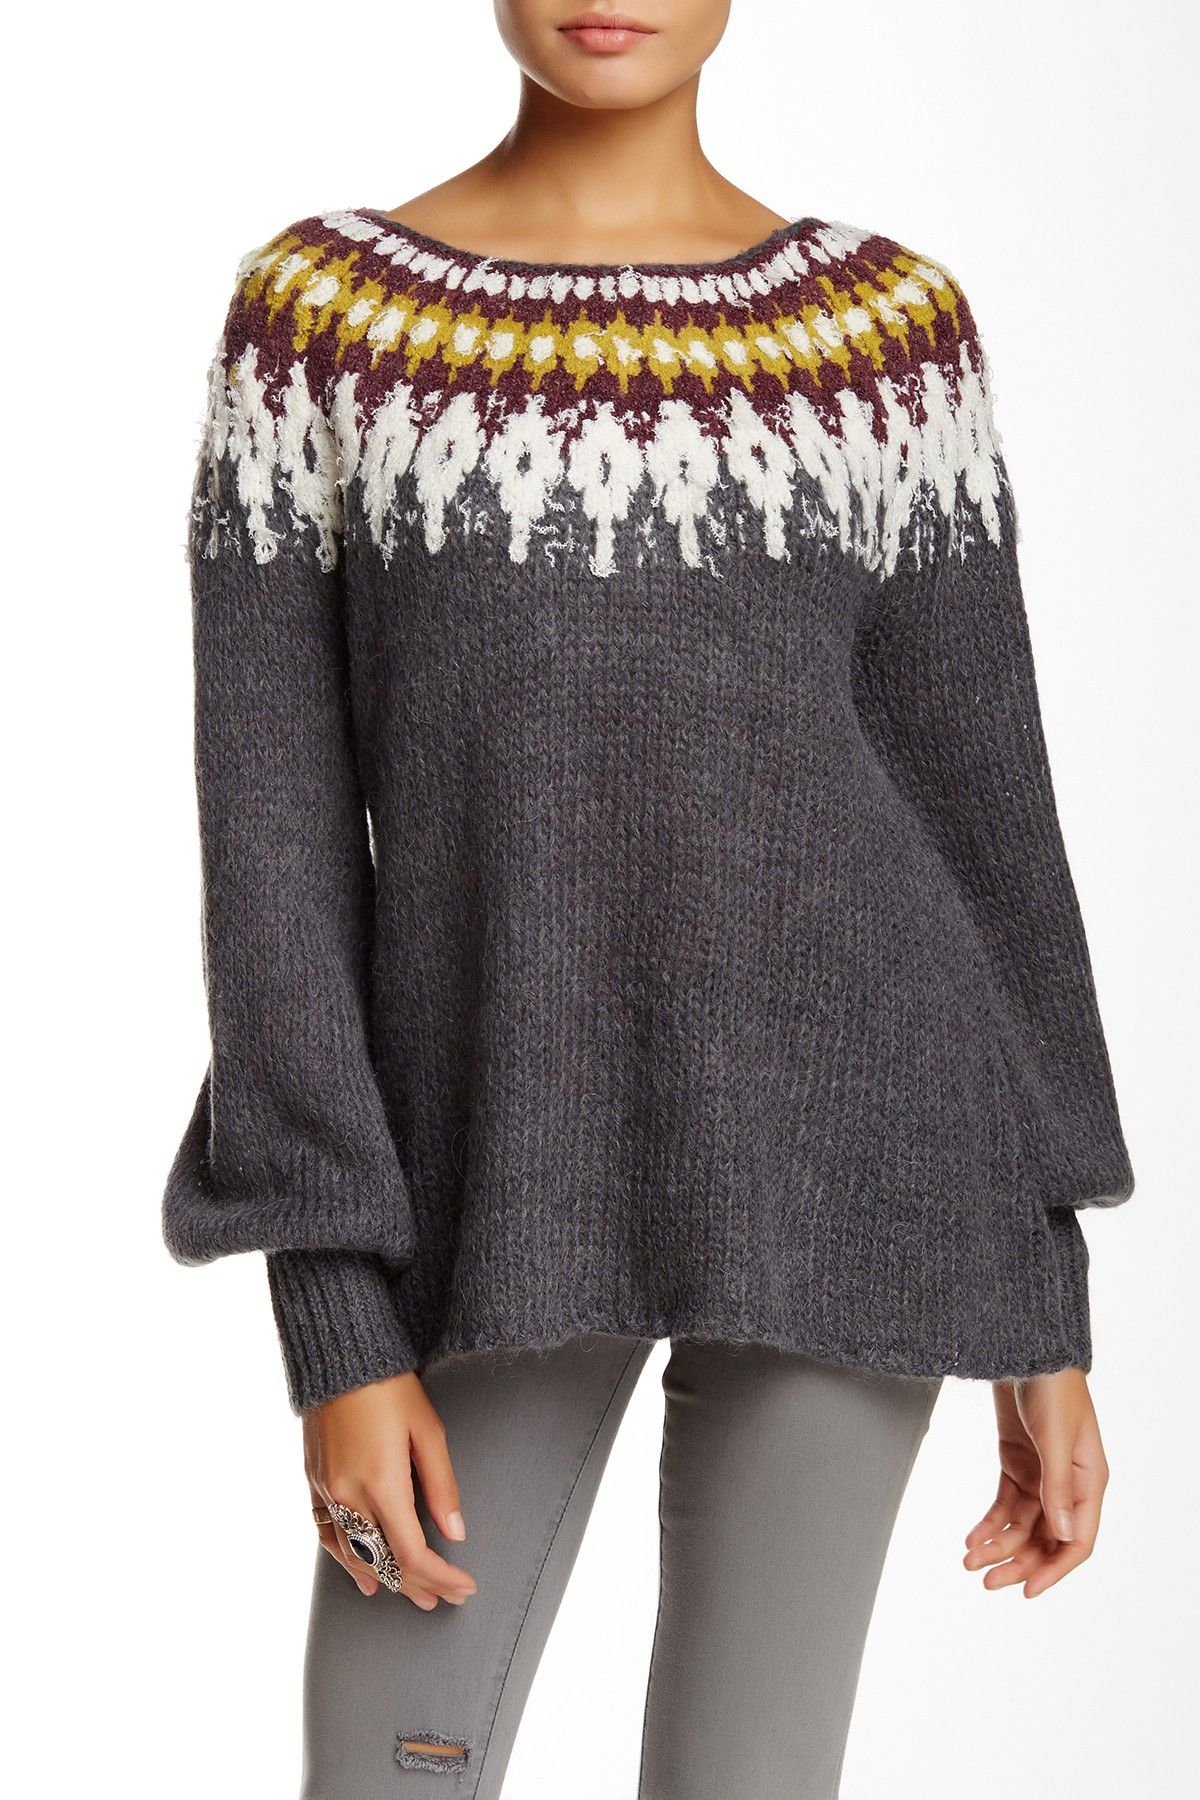 Free People | Baltic Fairisle Sweater | Free people, Nordstrom and ...